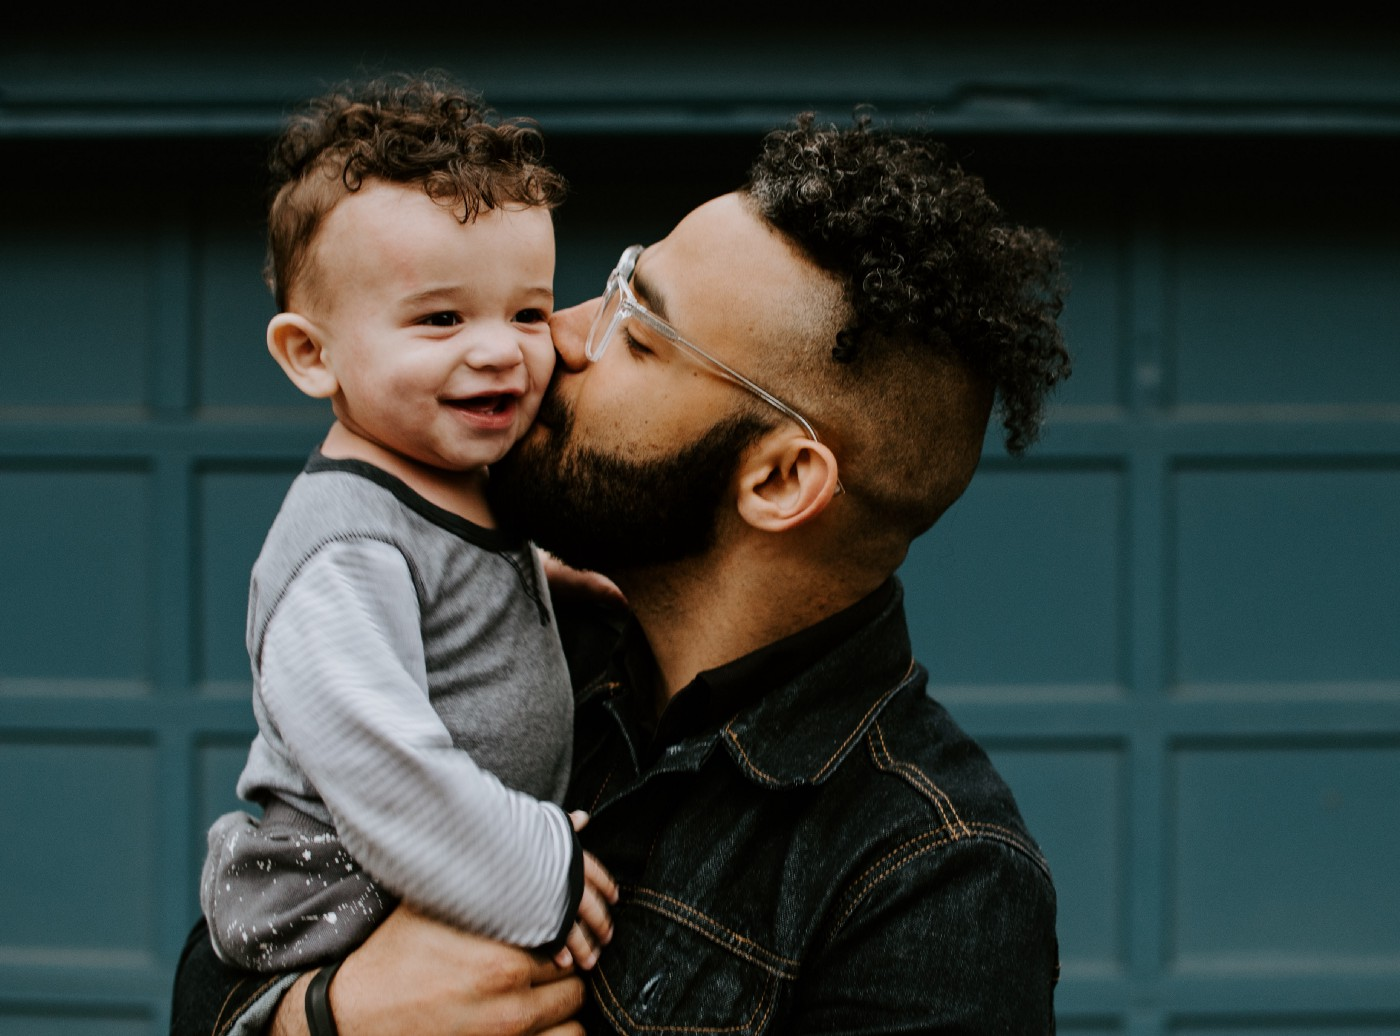 A man kissing a young, smiling child on the cheek